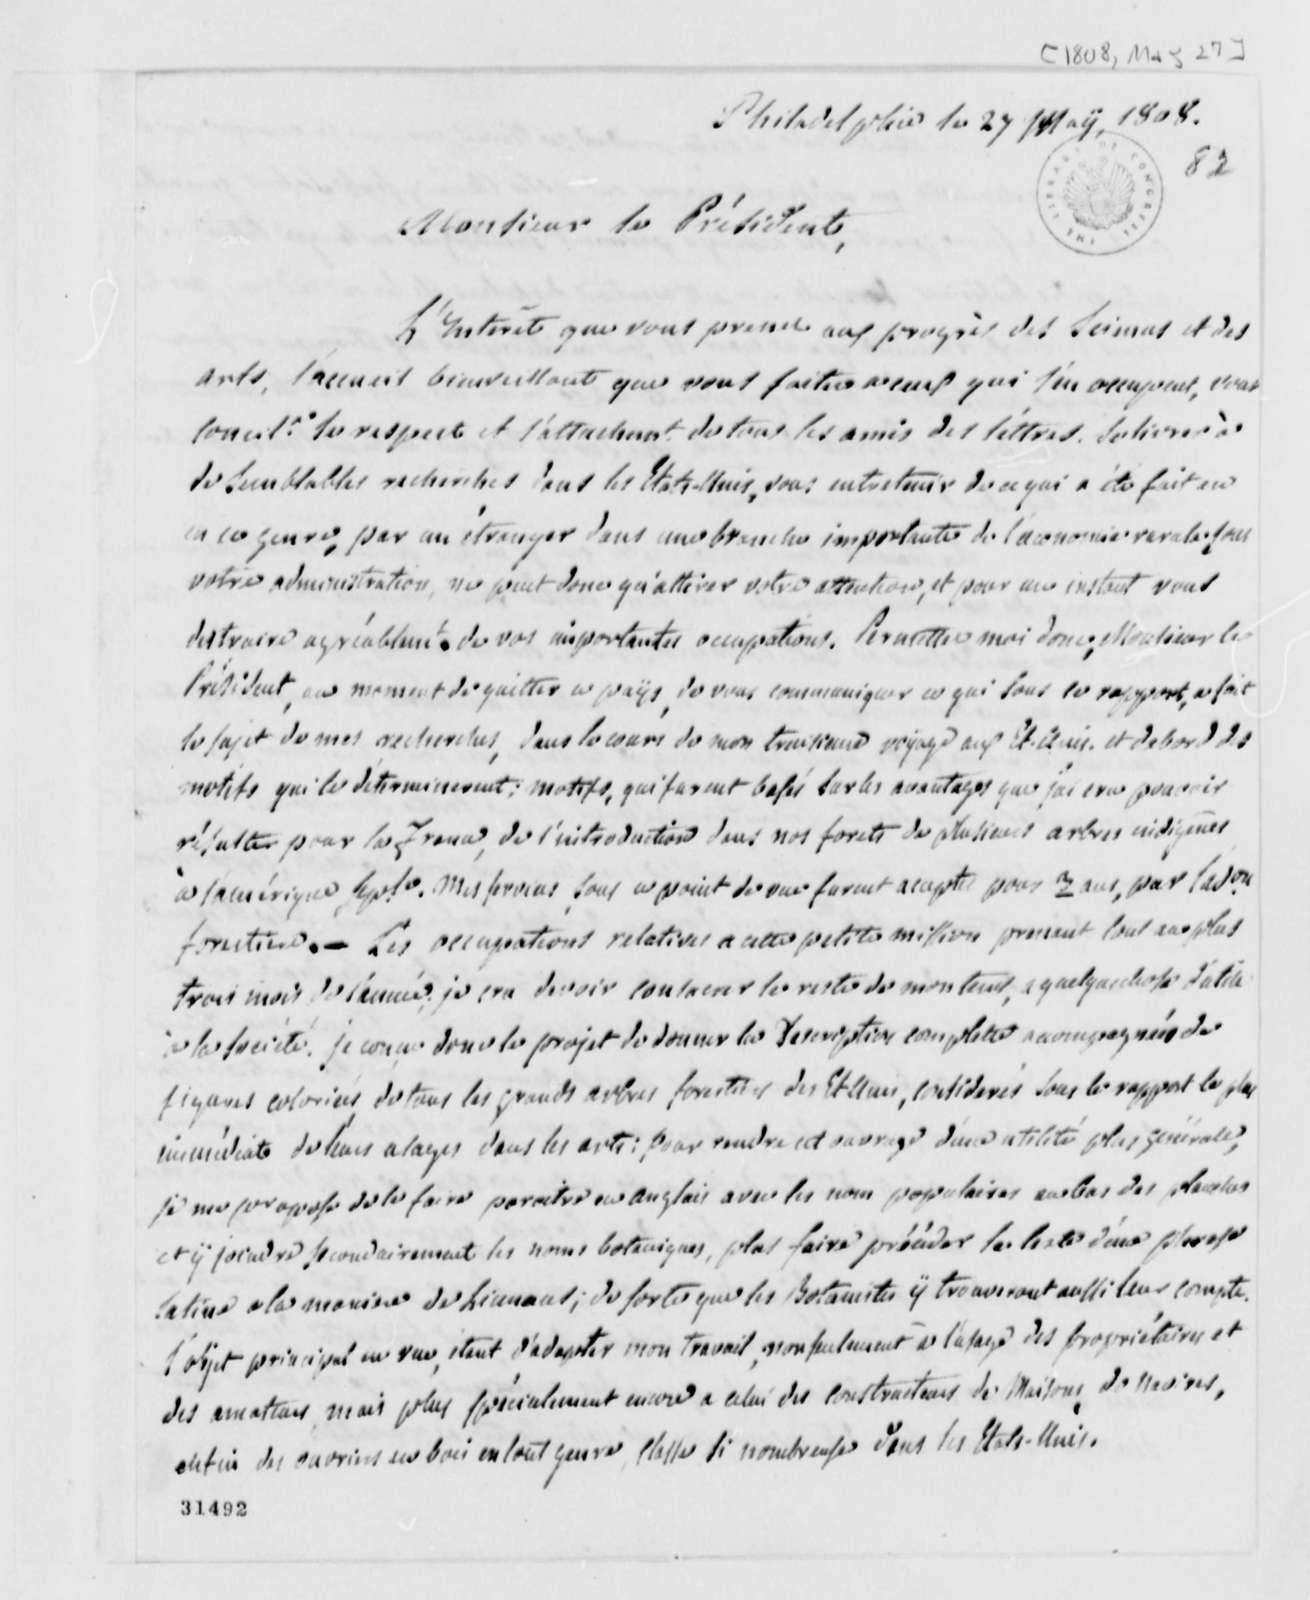 F. Andre Michaux to Thomas Jefferson, May 27, 1808